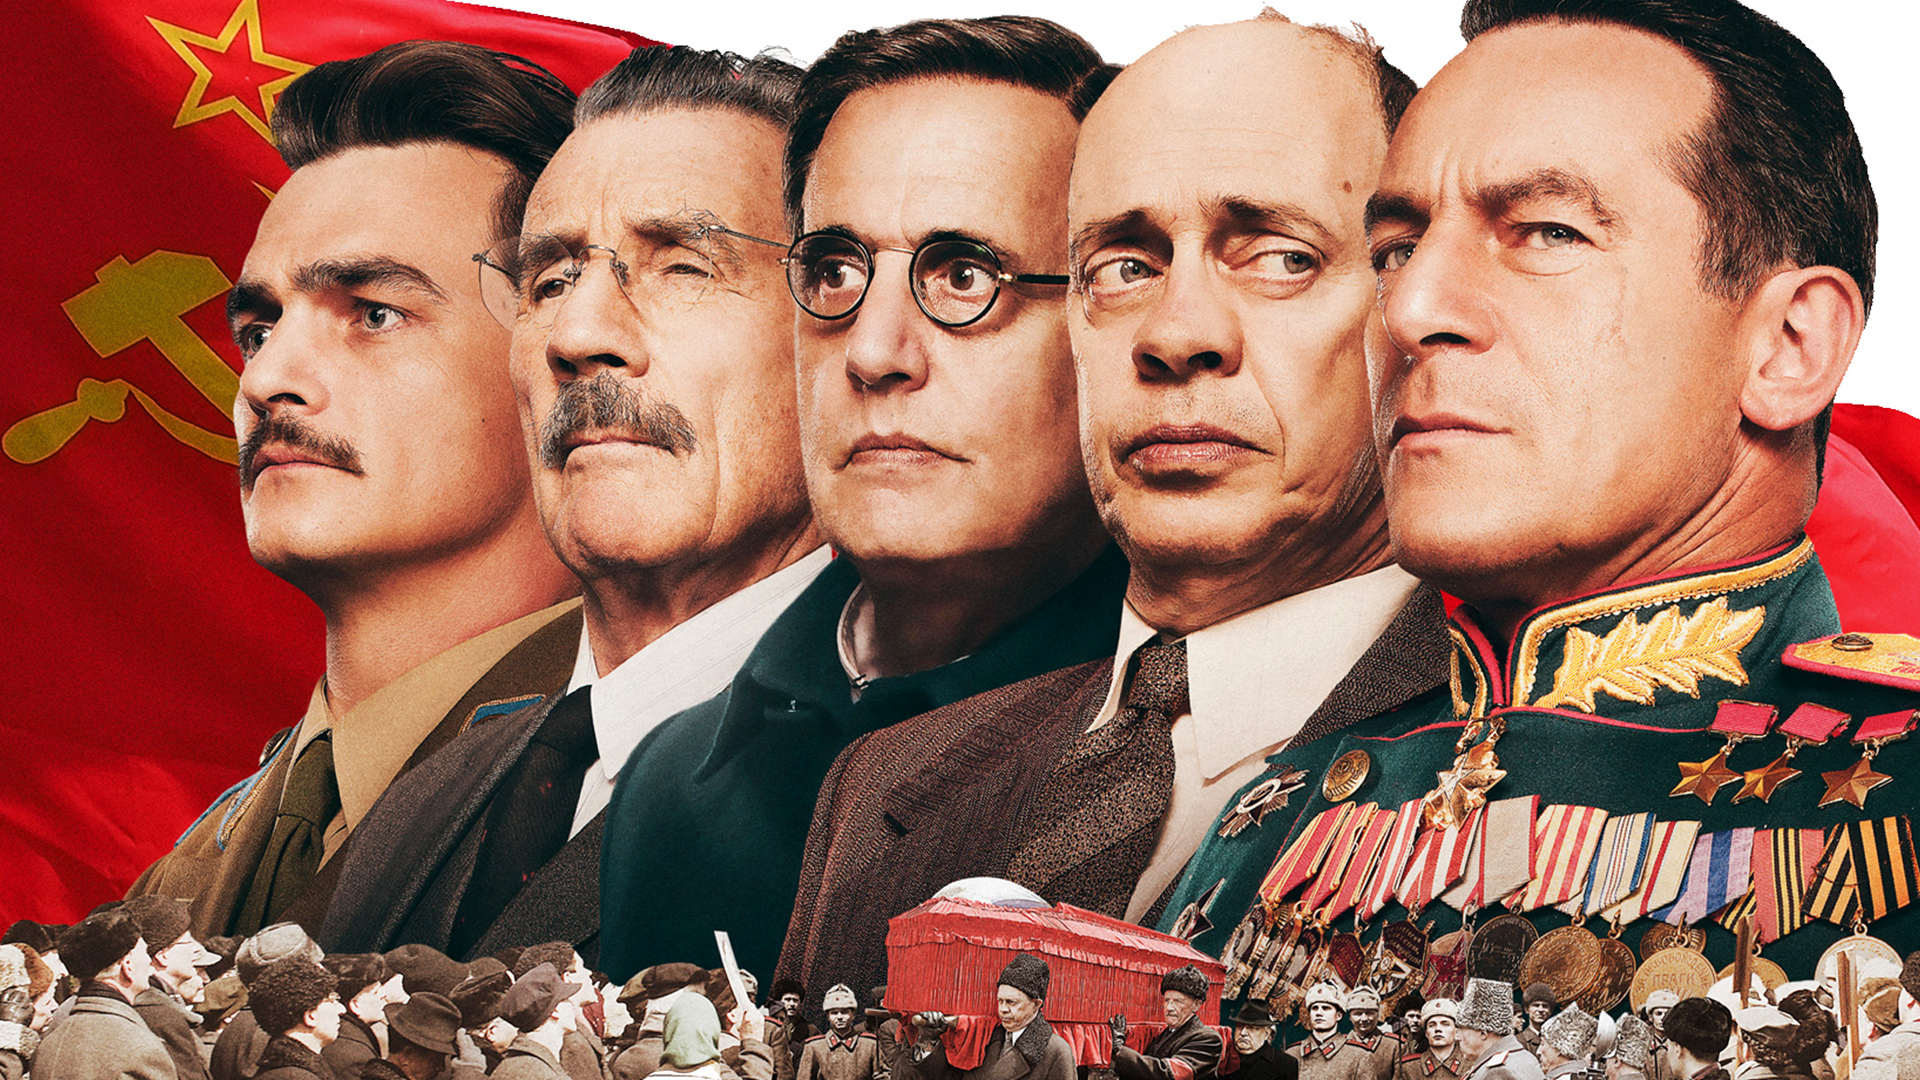 The Death of Stalin (2018)